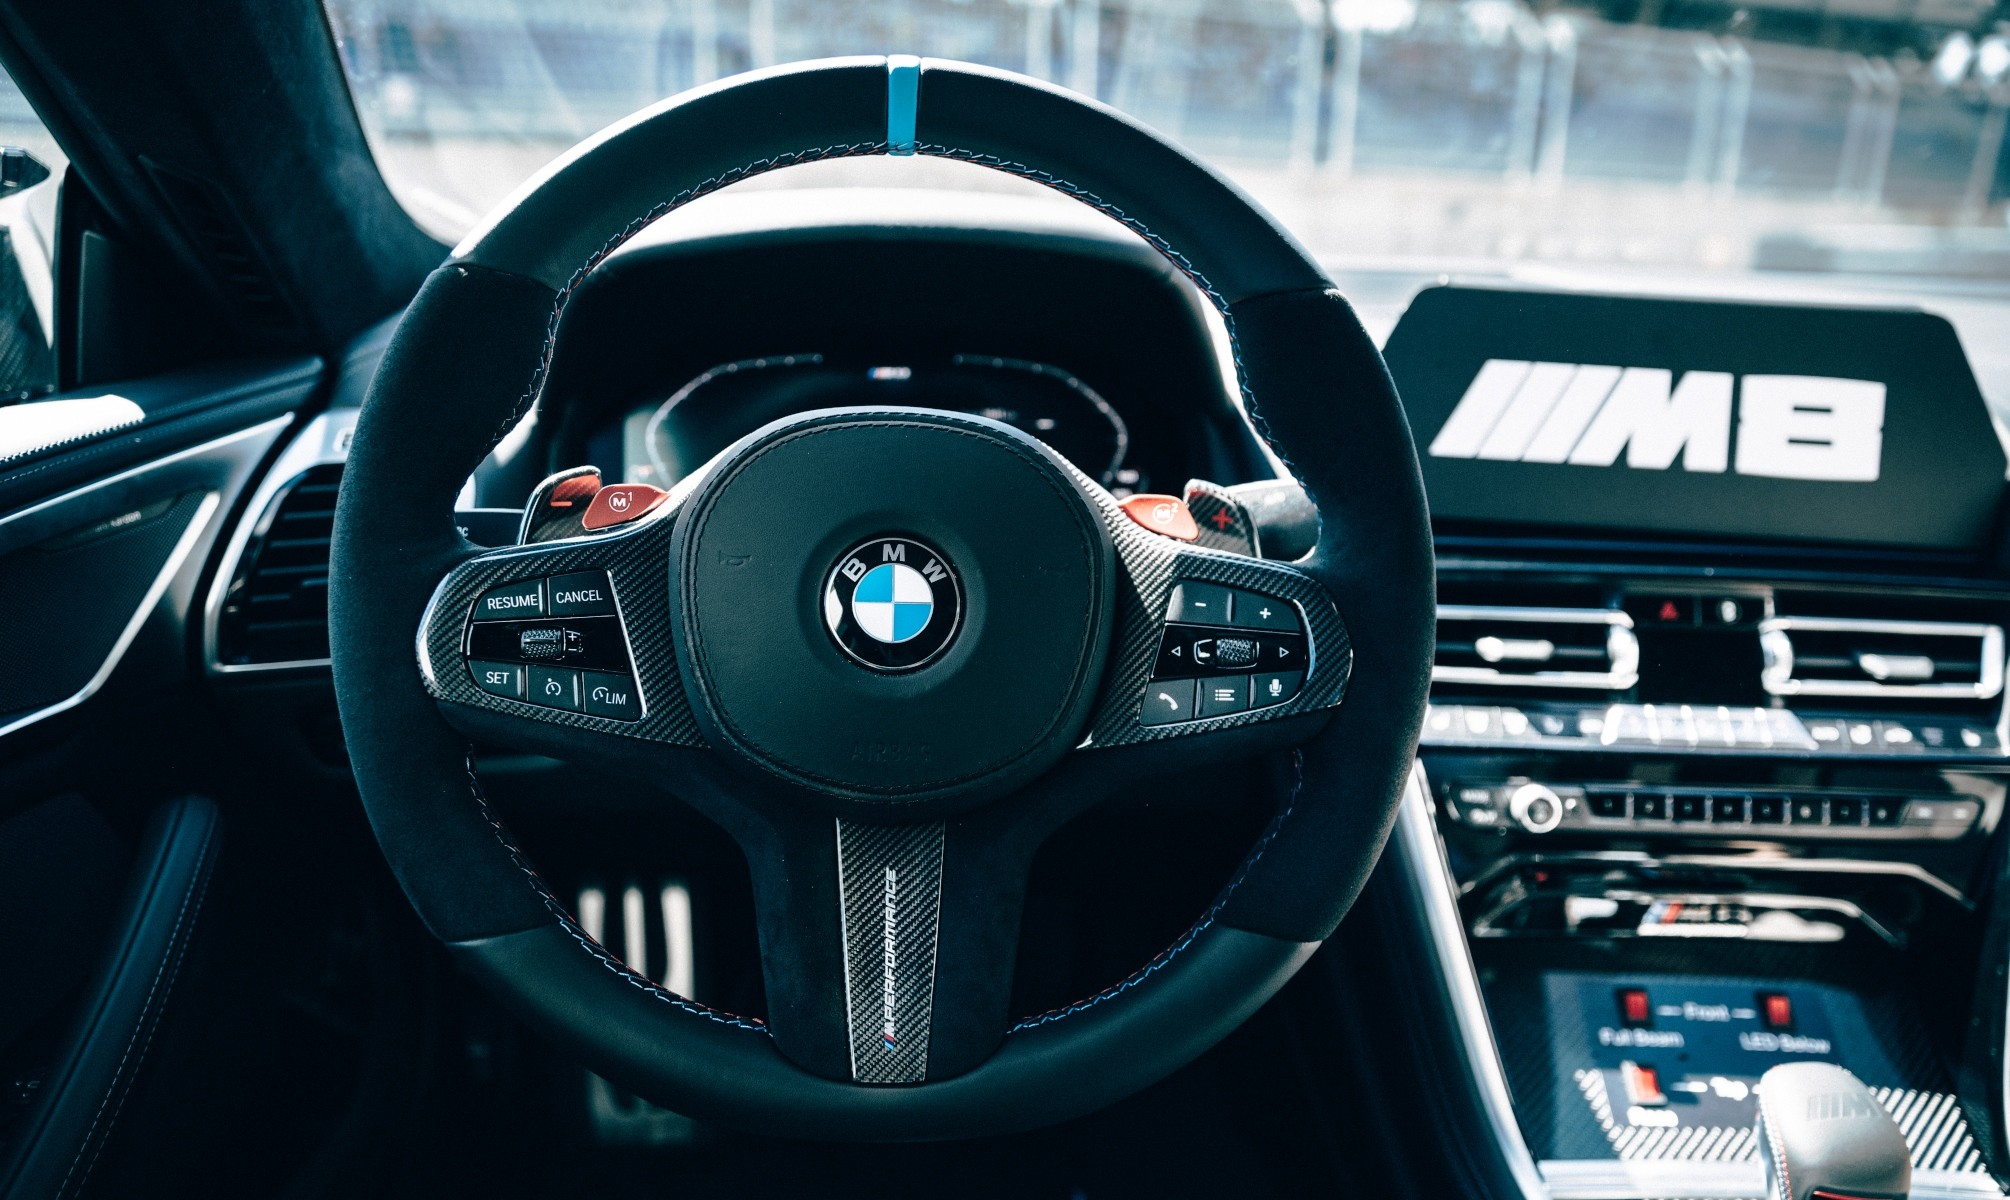 BMW M8 Safety Car interior